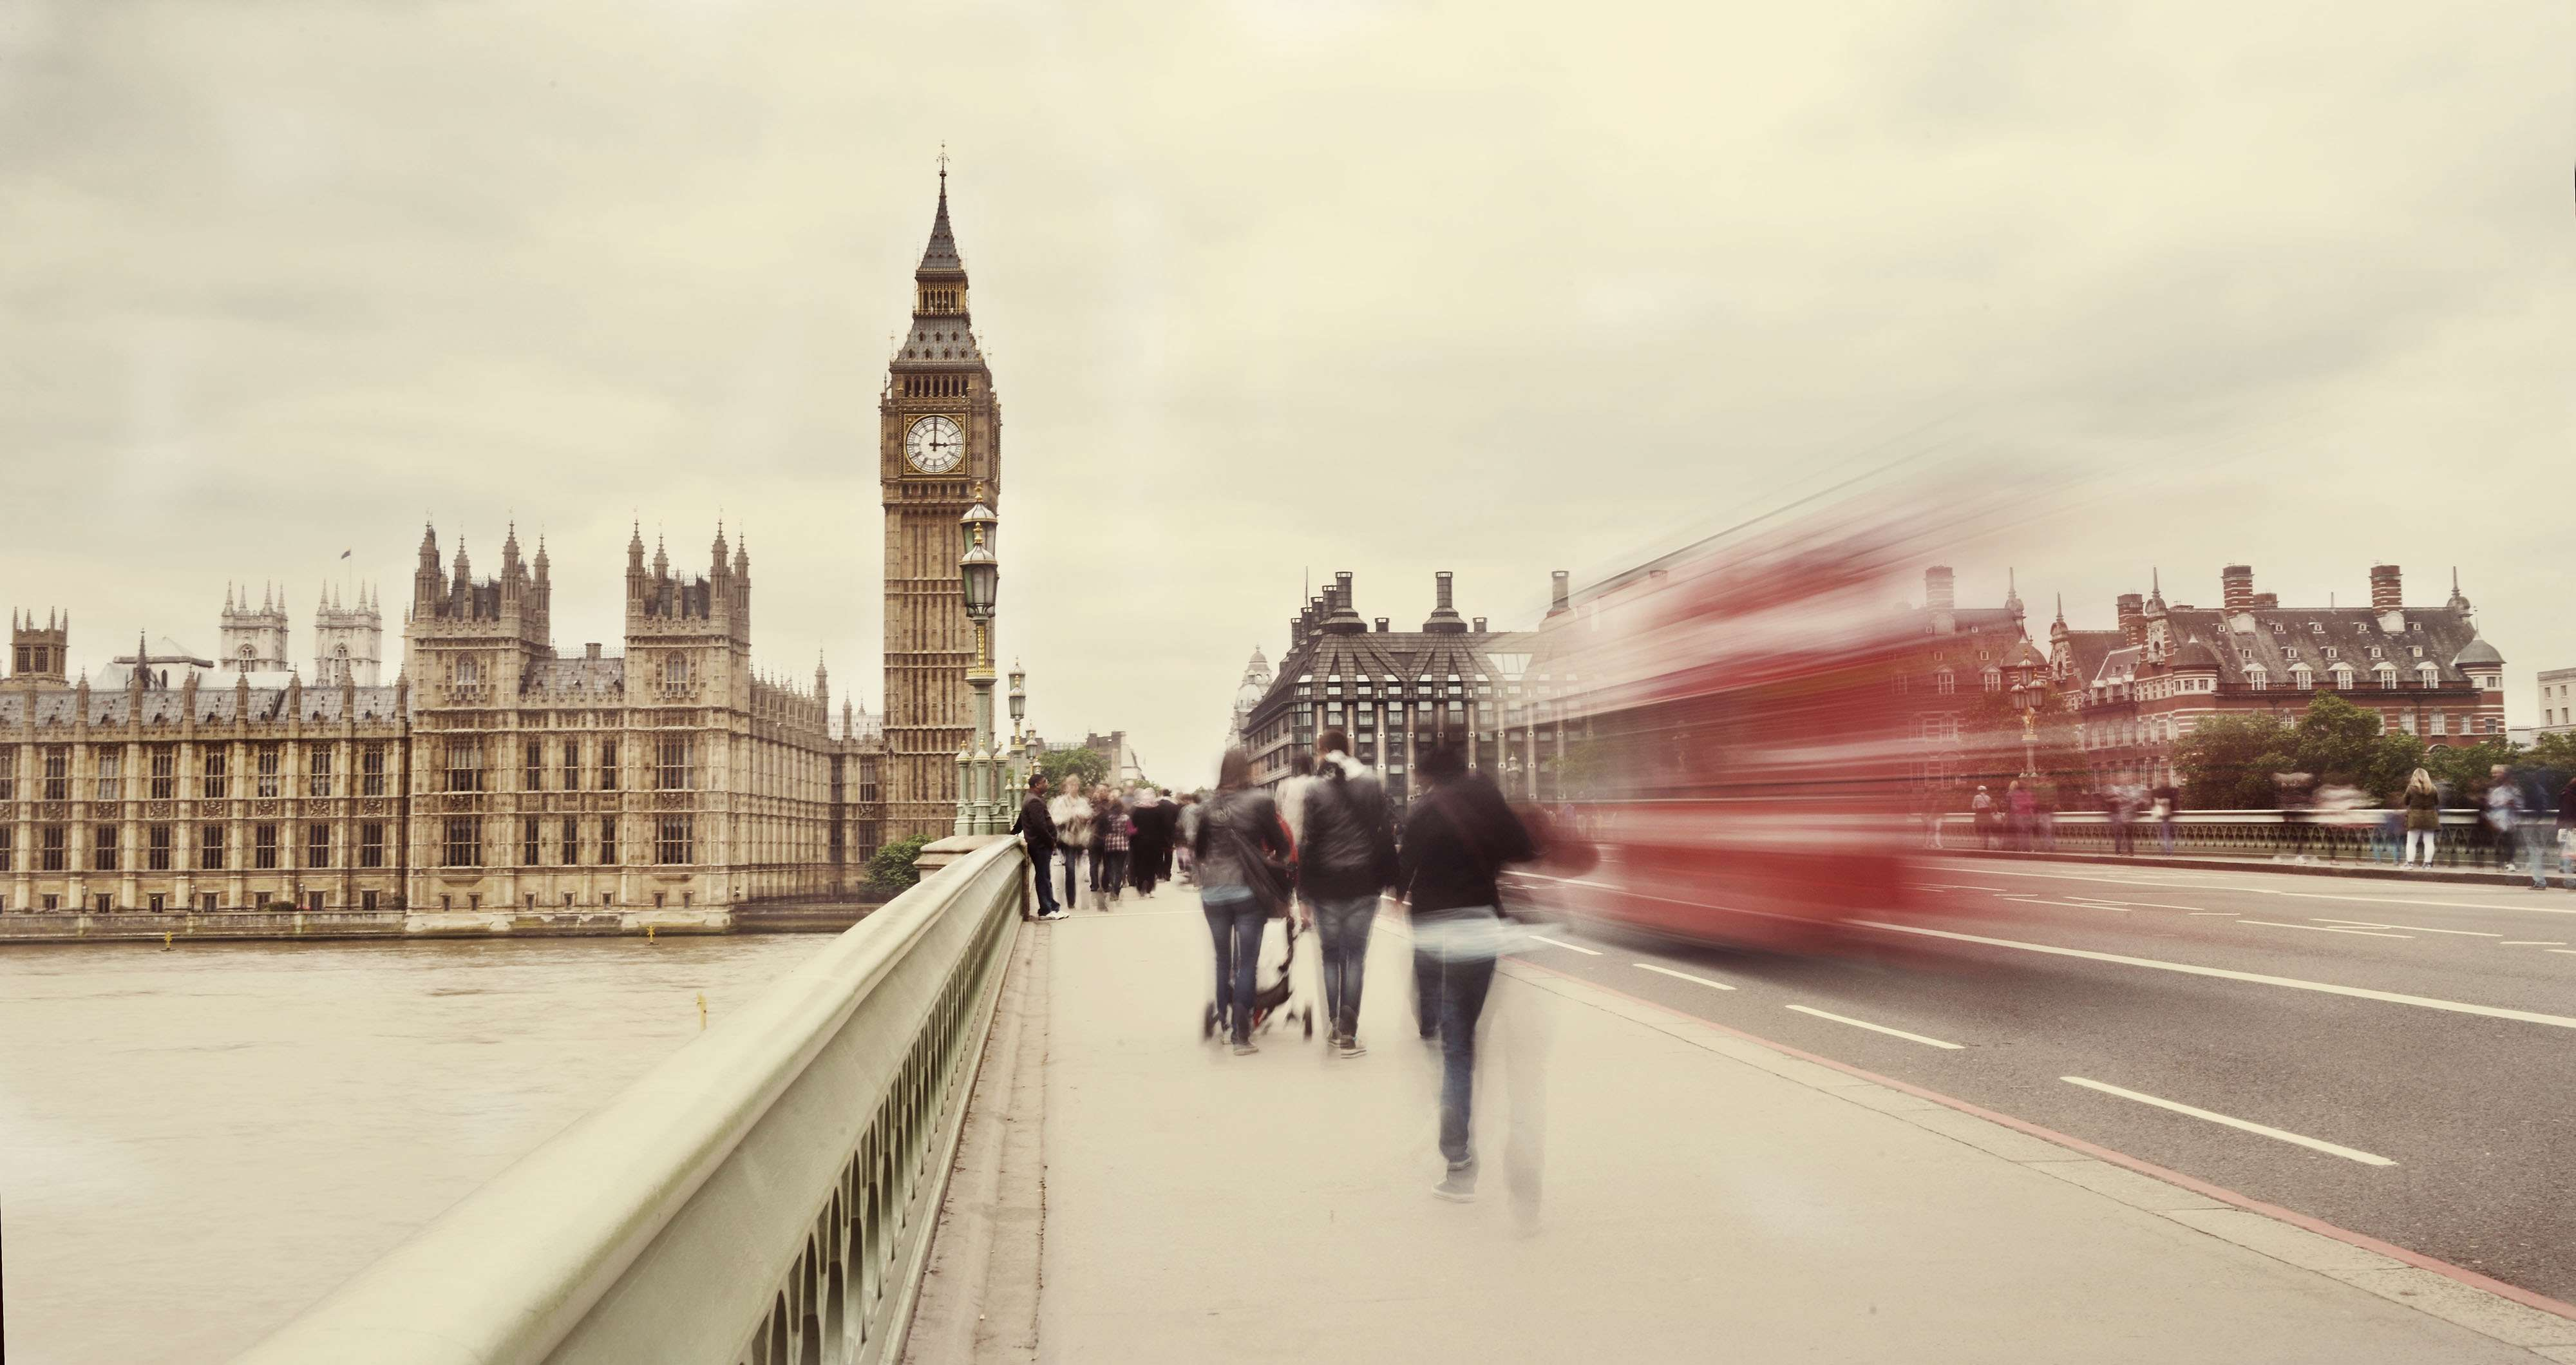 London is an important global intersection for investors, international students, and tourists from Asia and the Middle East. Image: Daniel Gale/Shutterstock